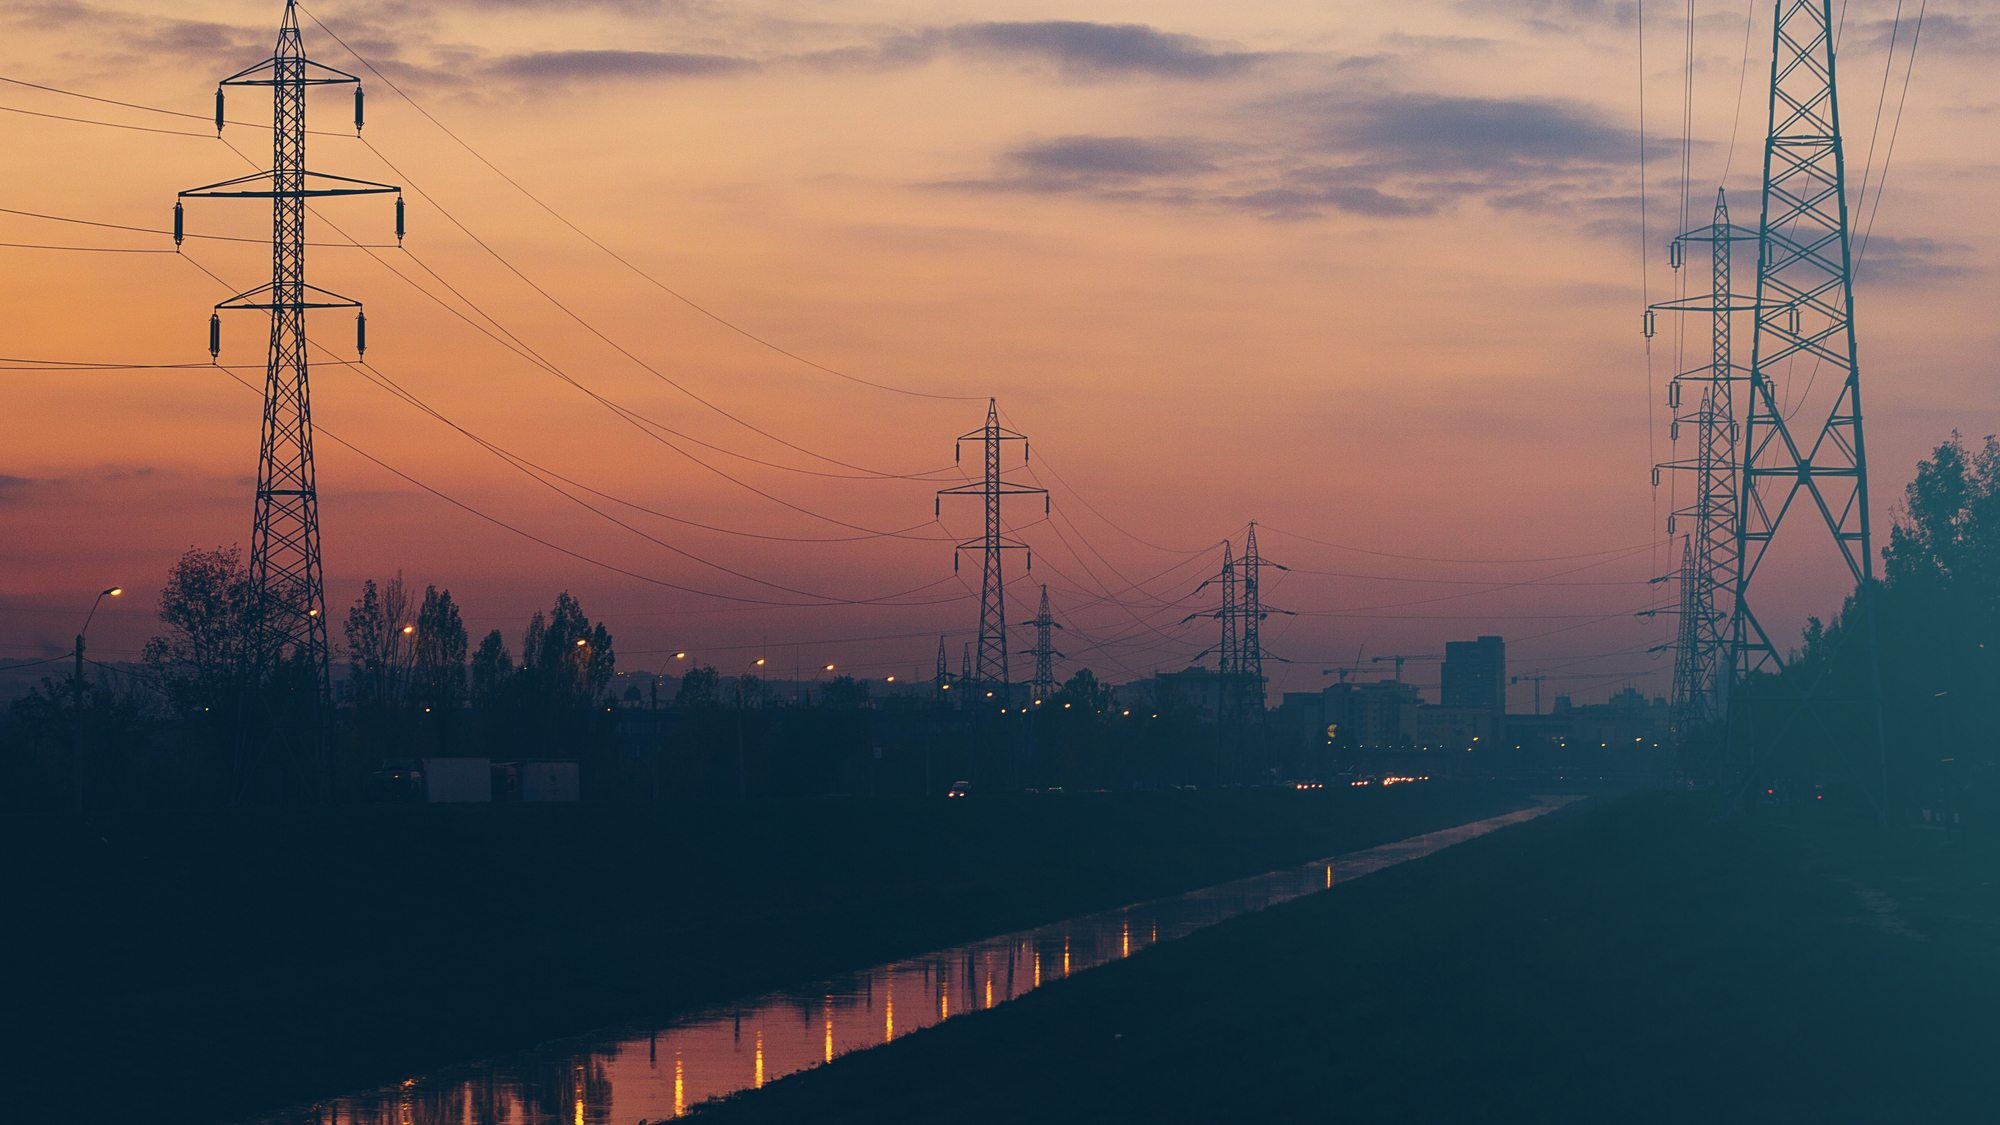 Image: Powerlines at sunset